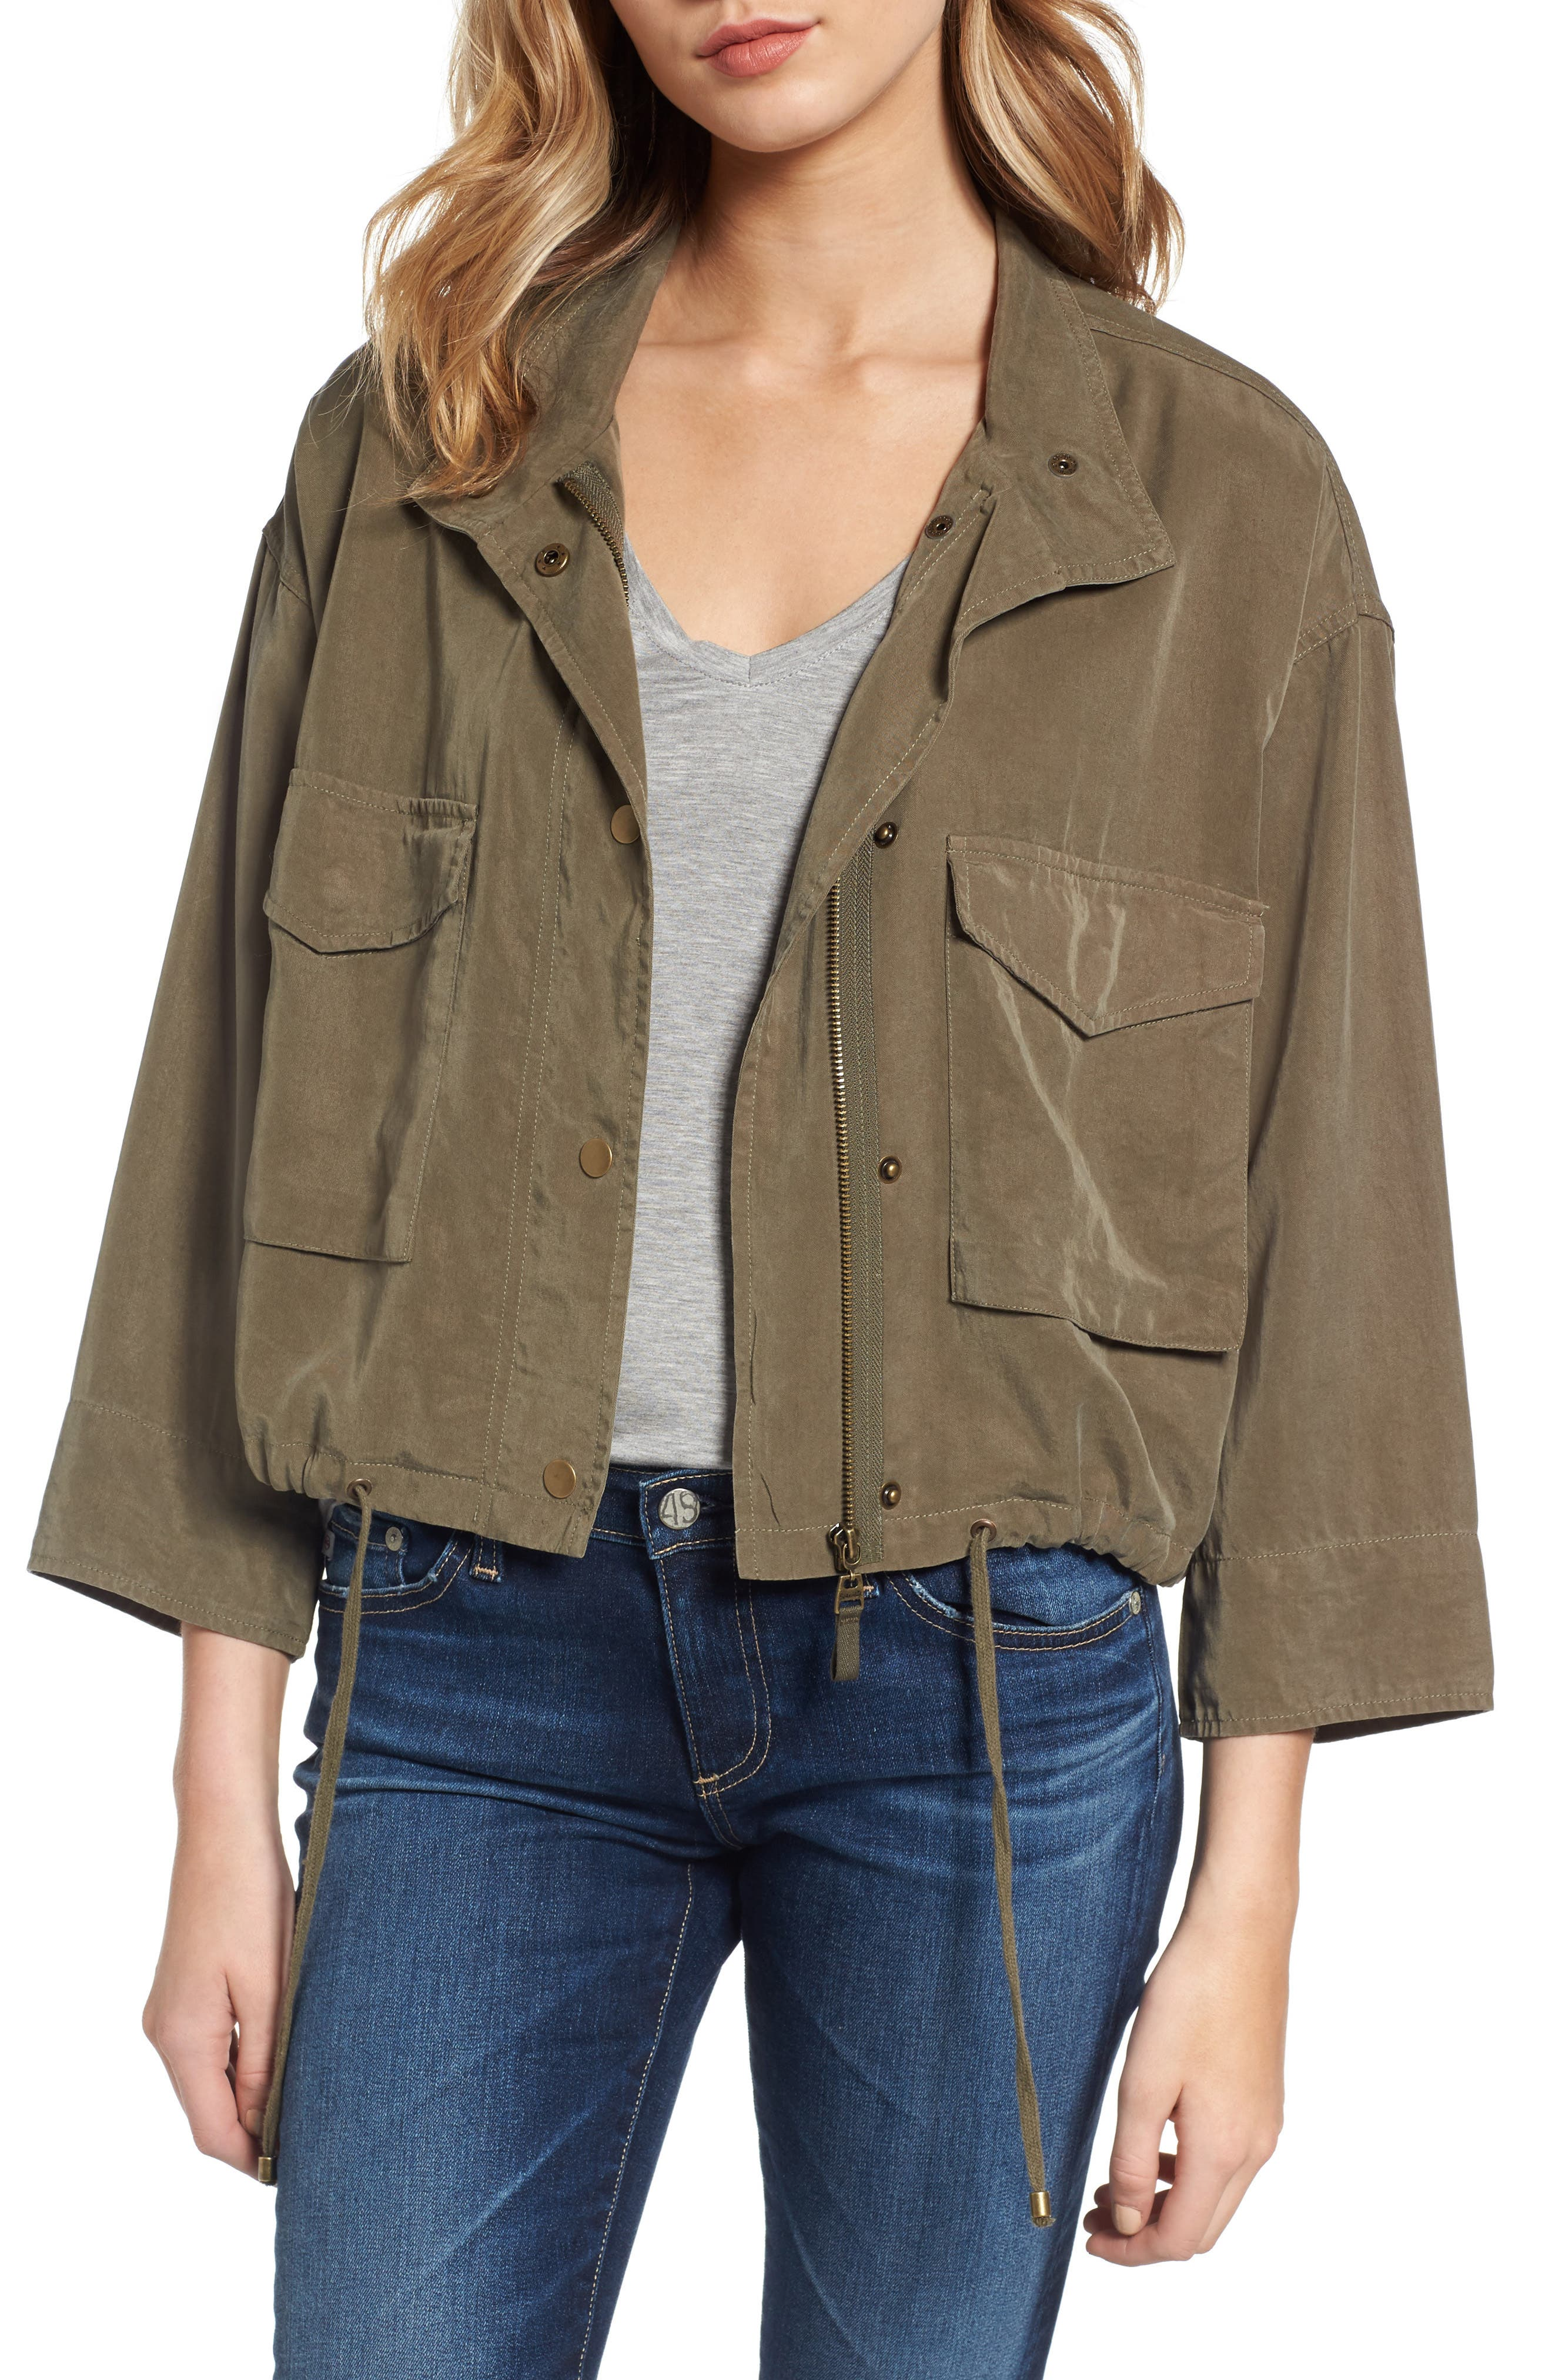 Splendid Crop Military Jacket